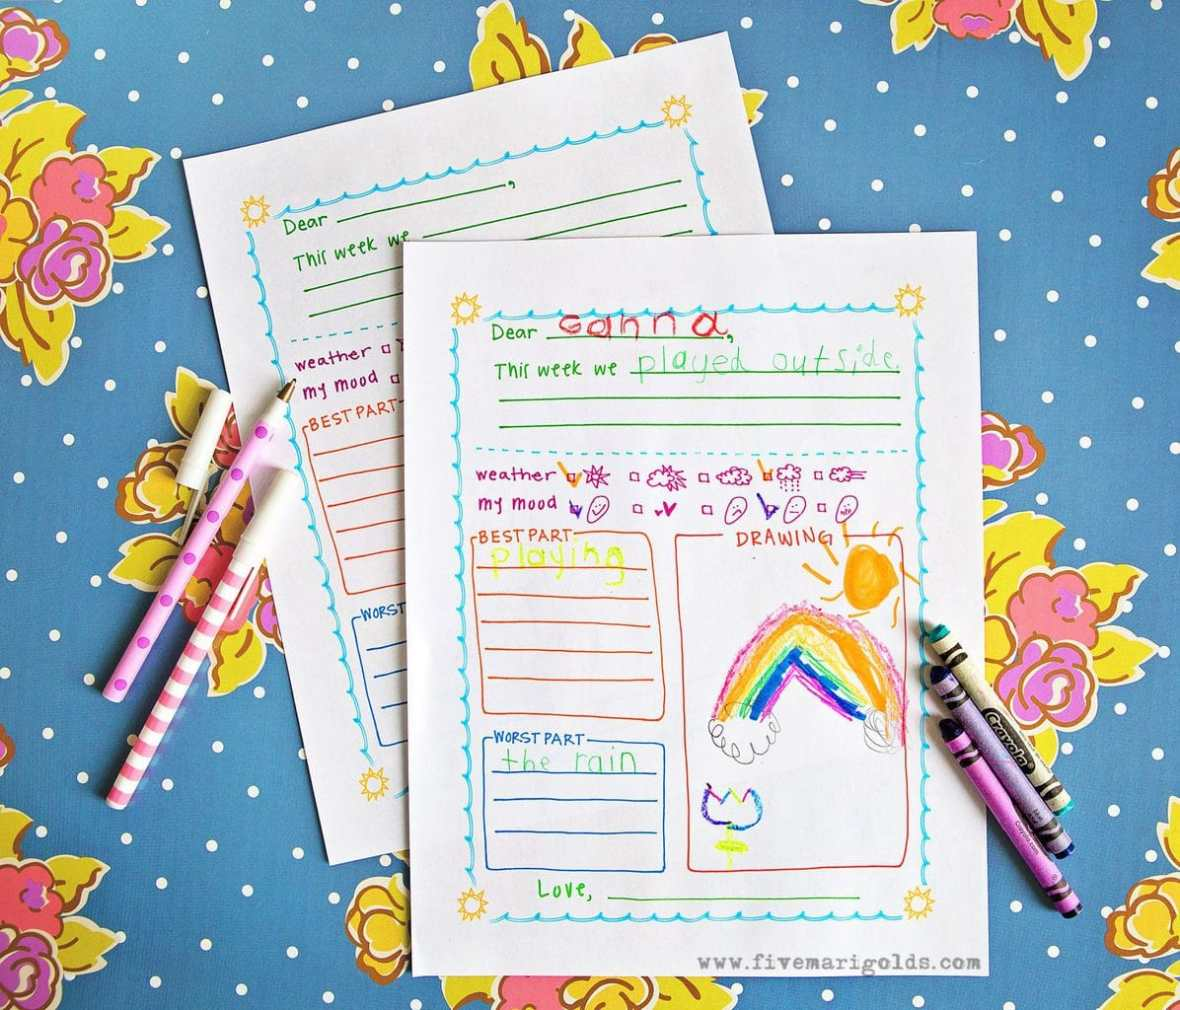 Summer letter templates for kids five marigolds this free summer letter template for kids is great for pen pals summer camp maxwellsz